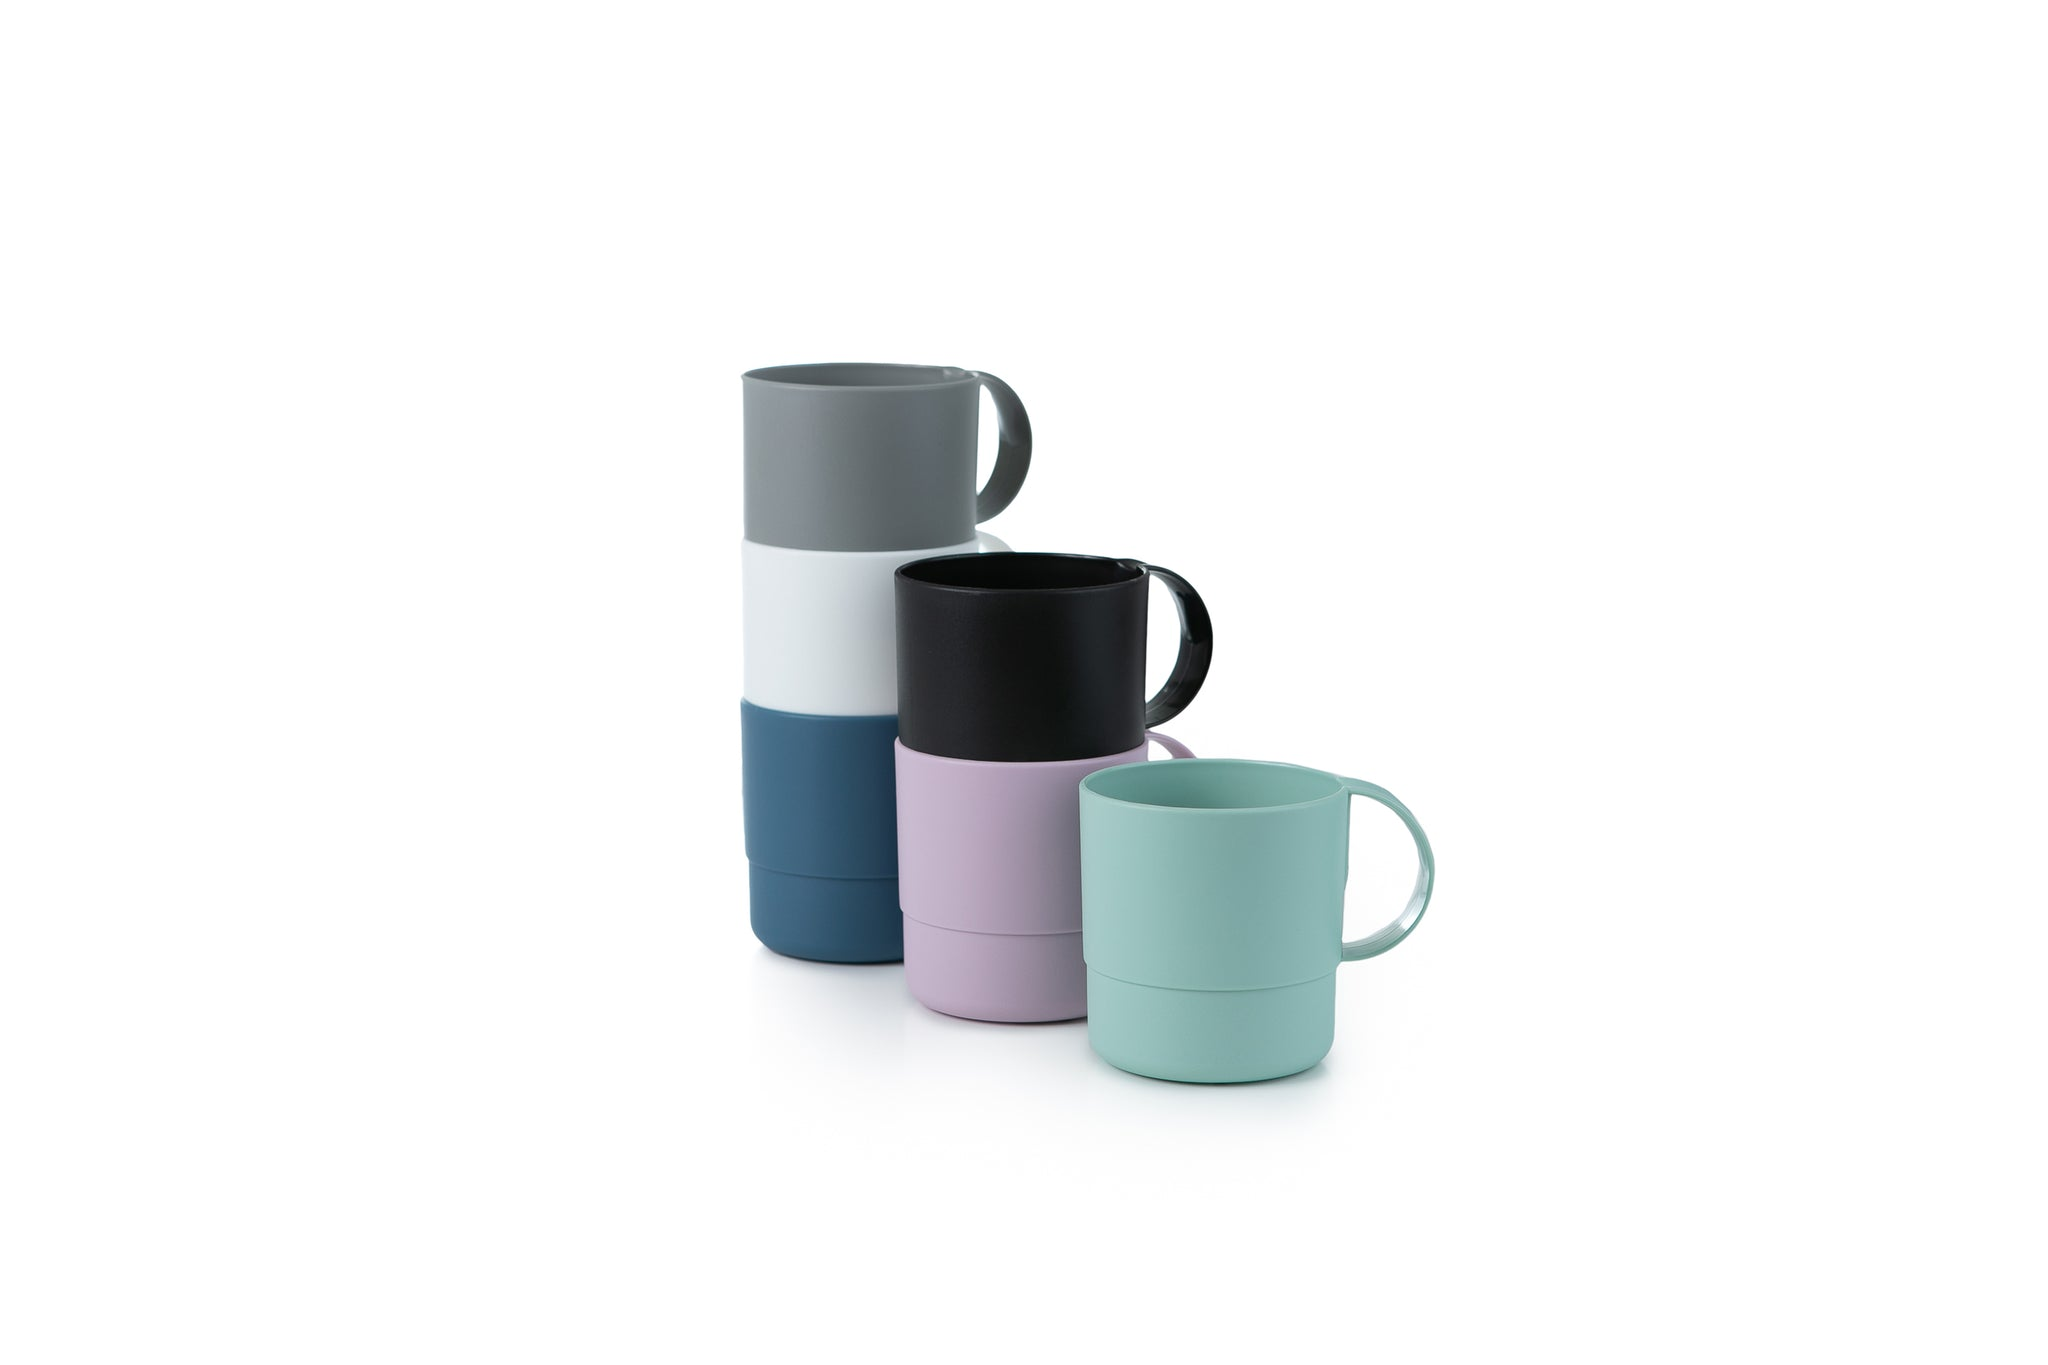 Microwavable Stackable Unbreakable and Reusable Plastic Mugs